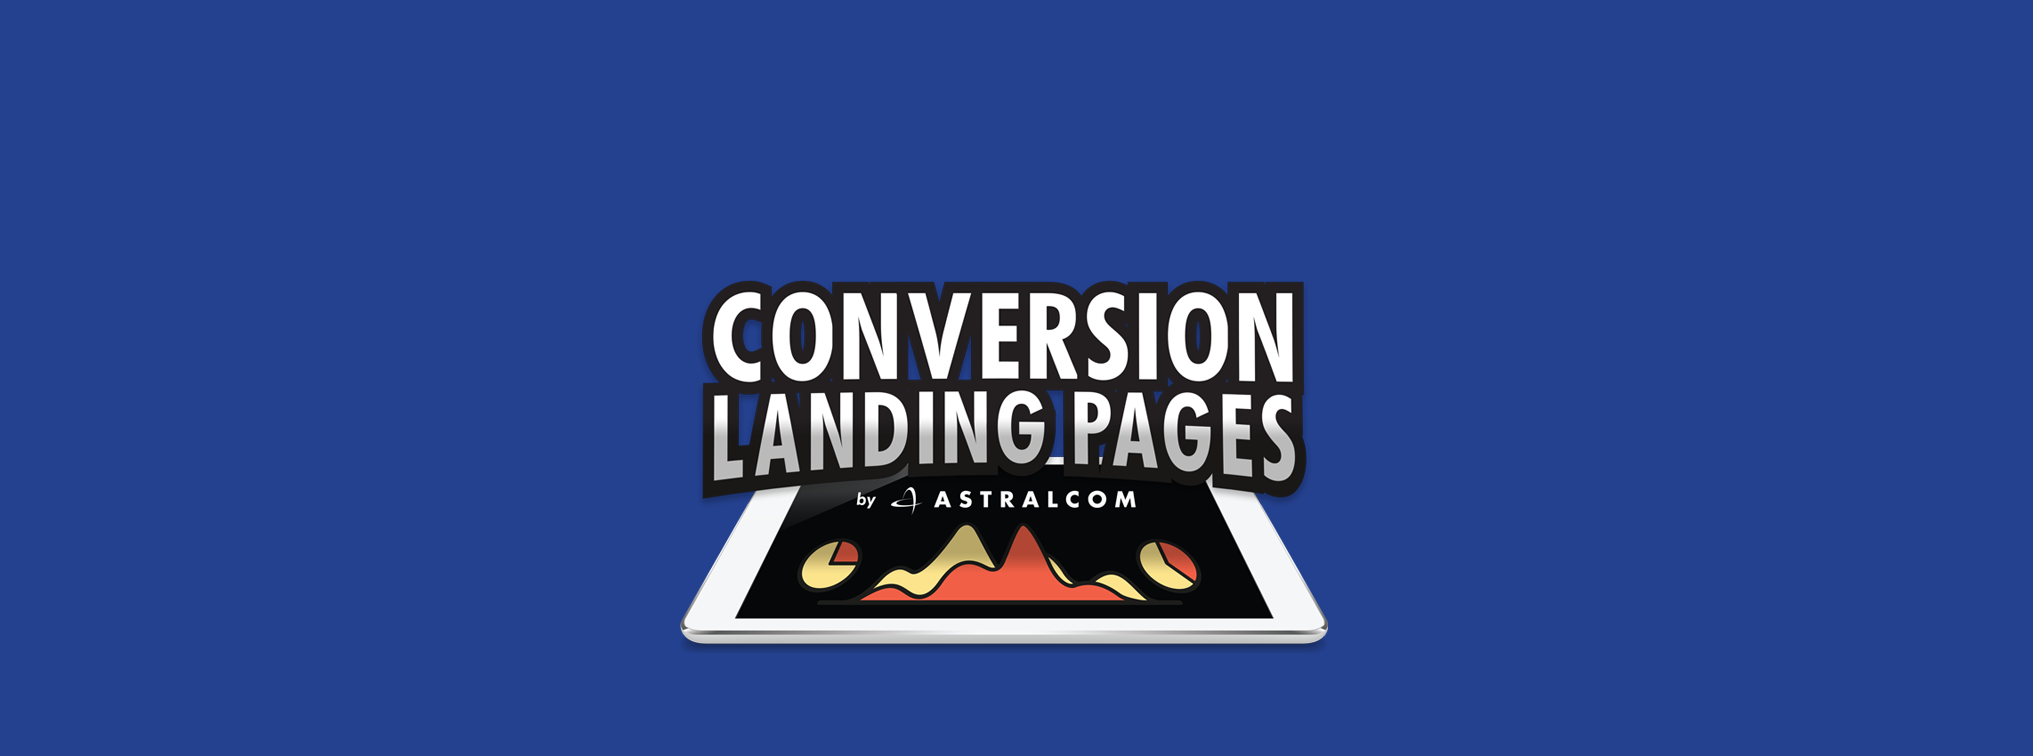 Conversion Landing Pages